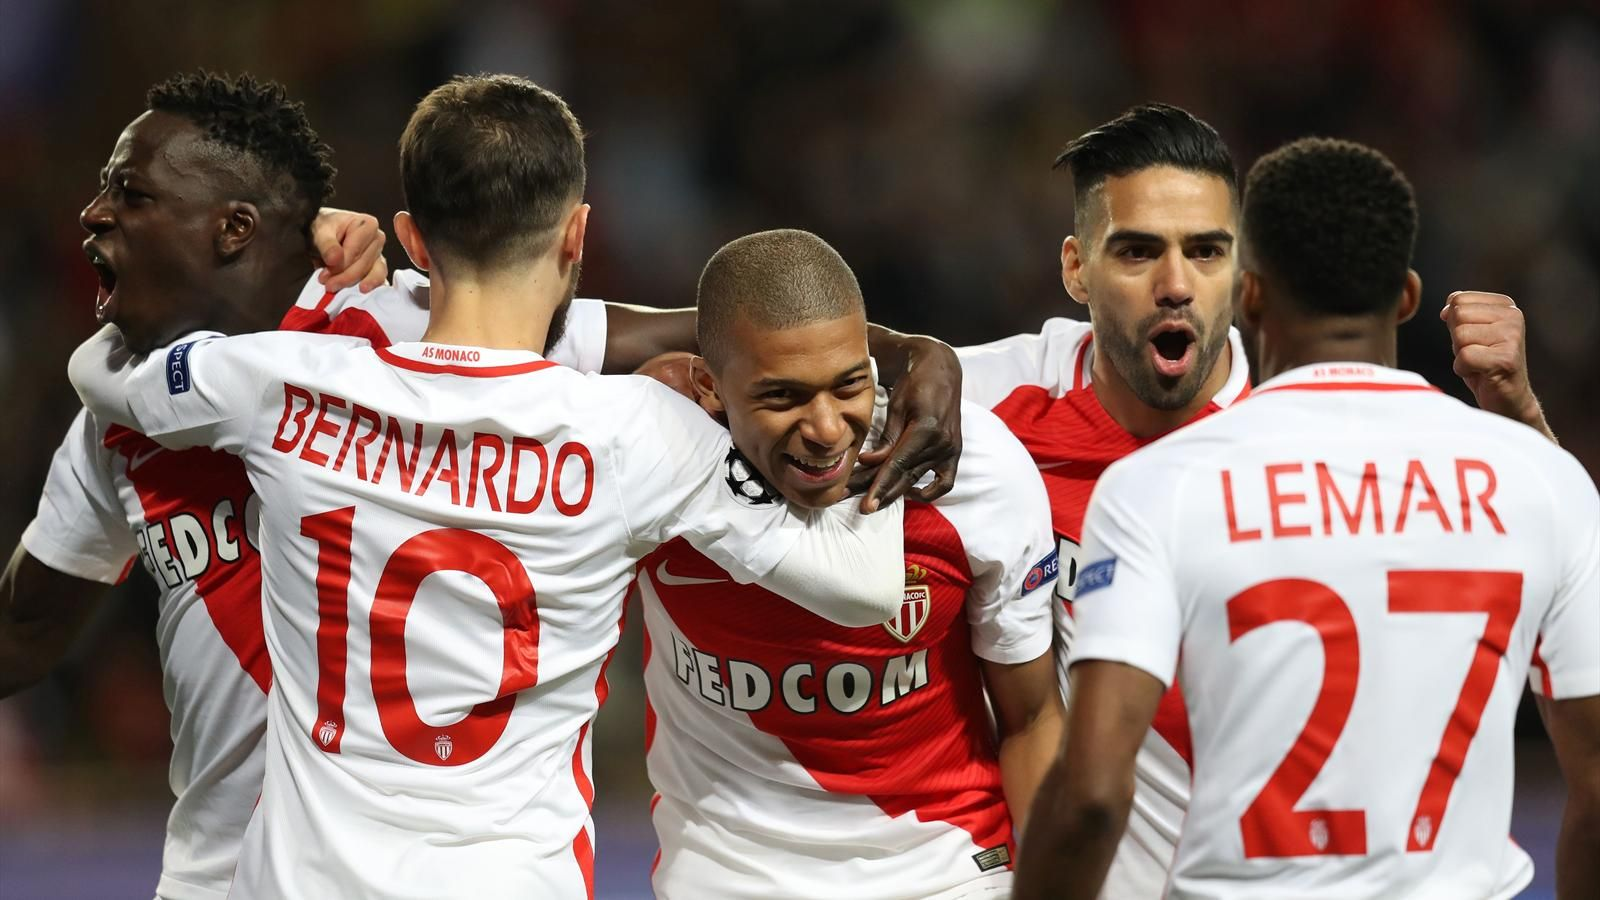 Toulouse - Monaco Soccer Prediction